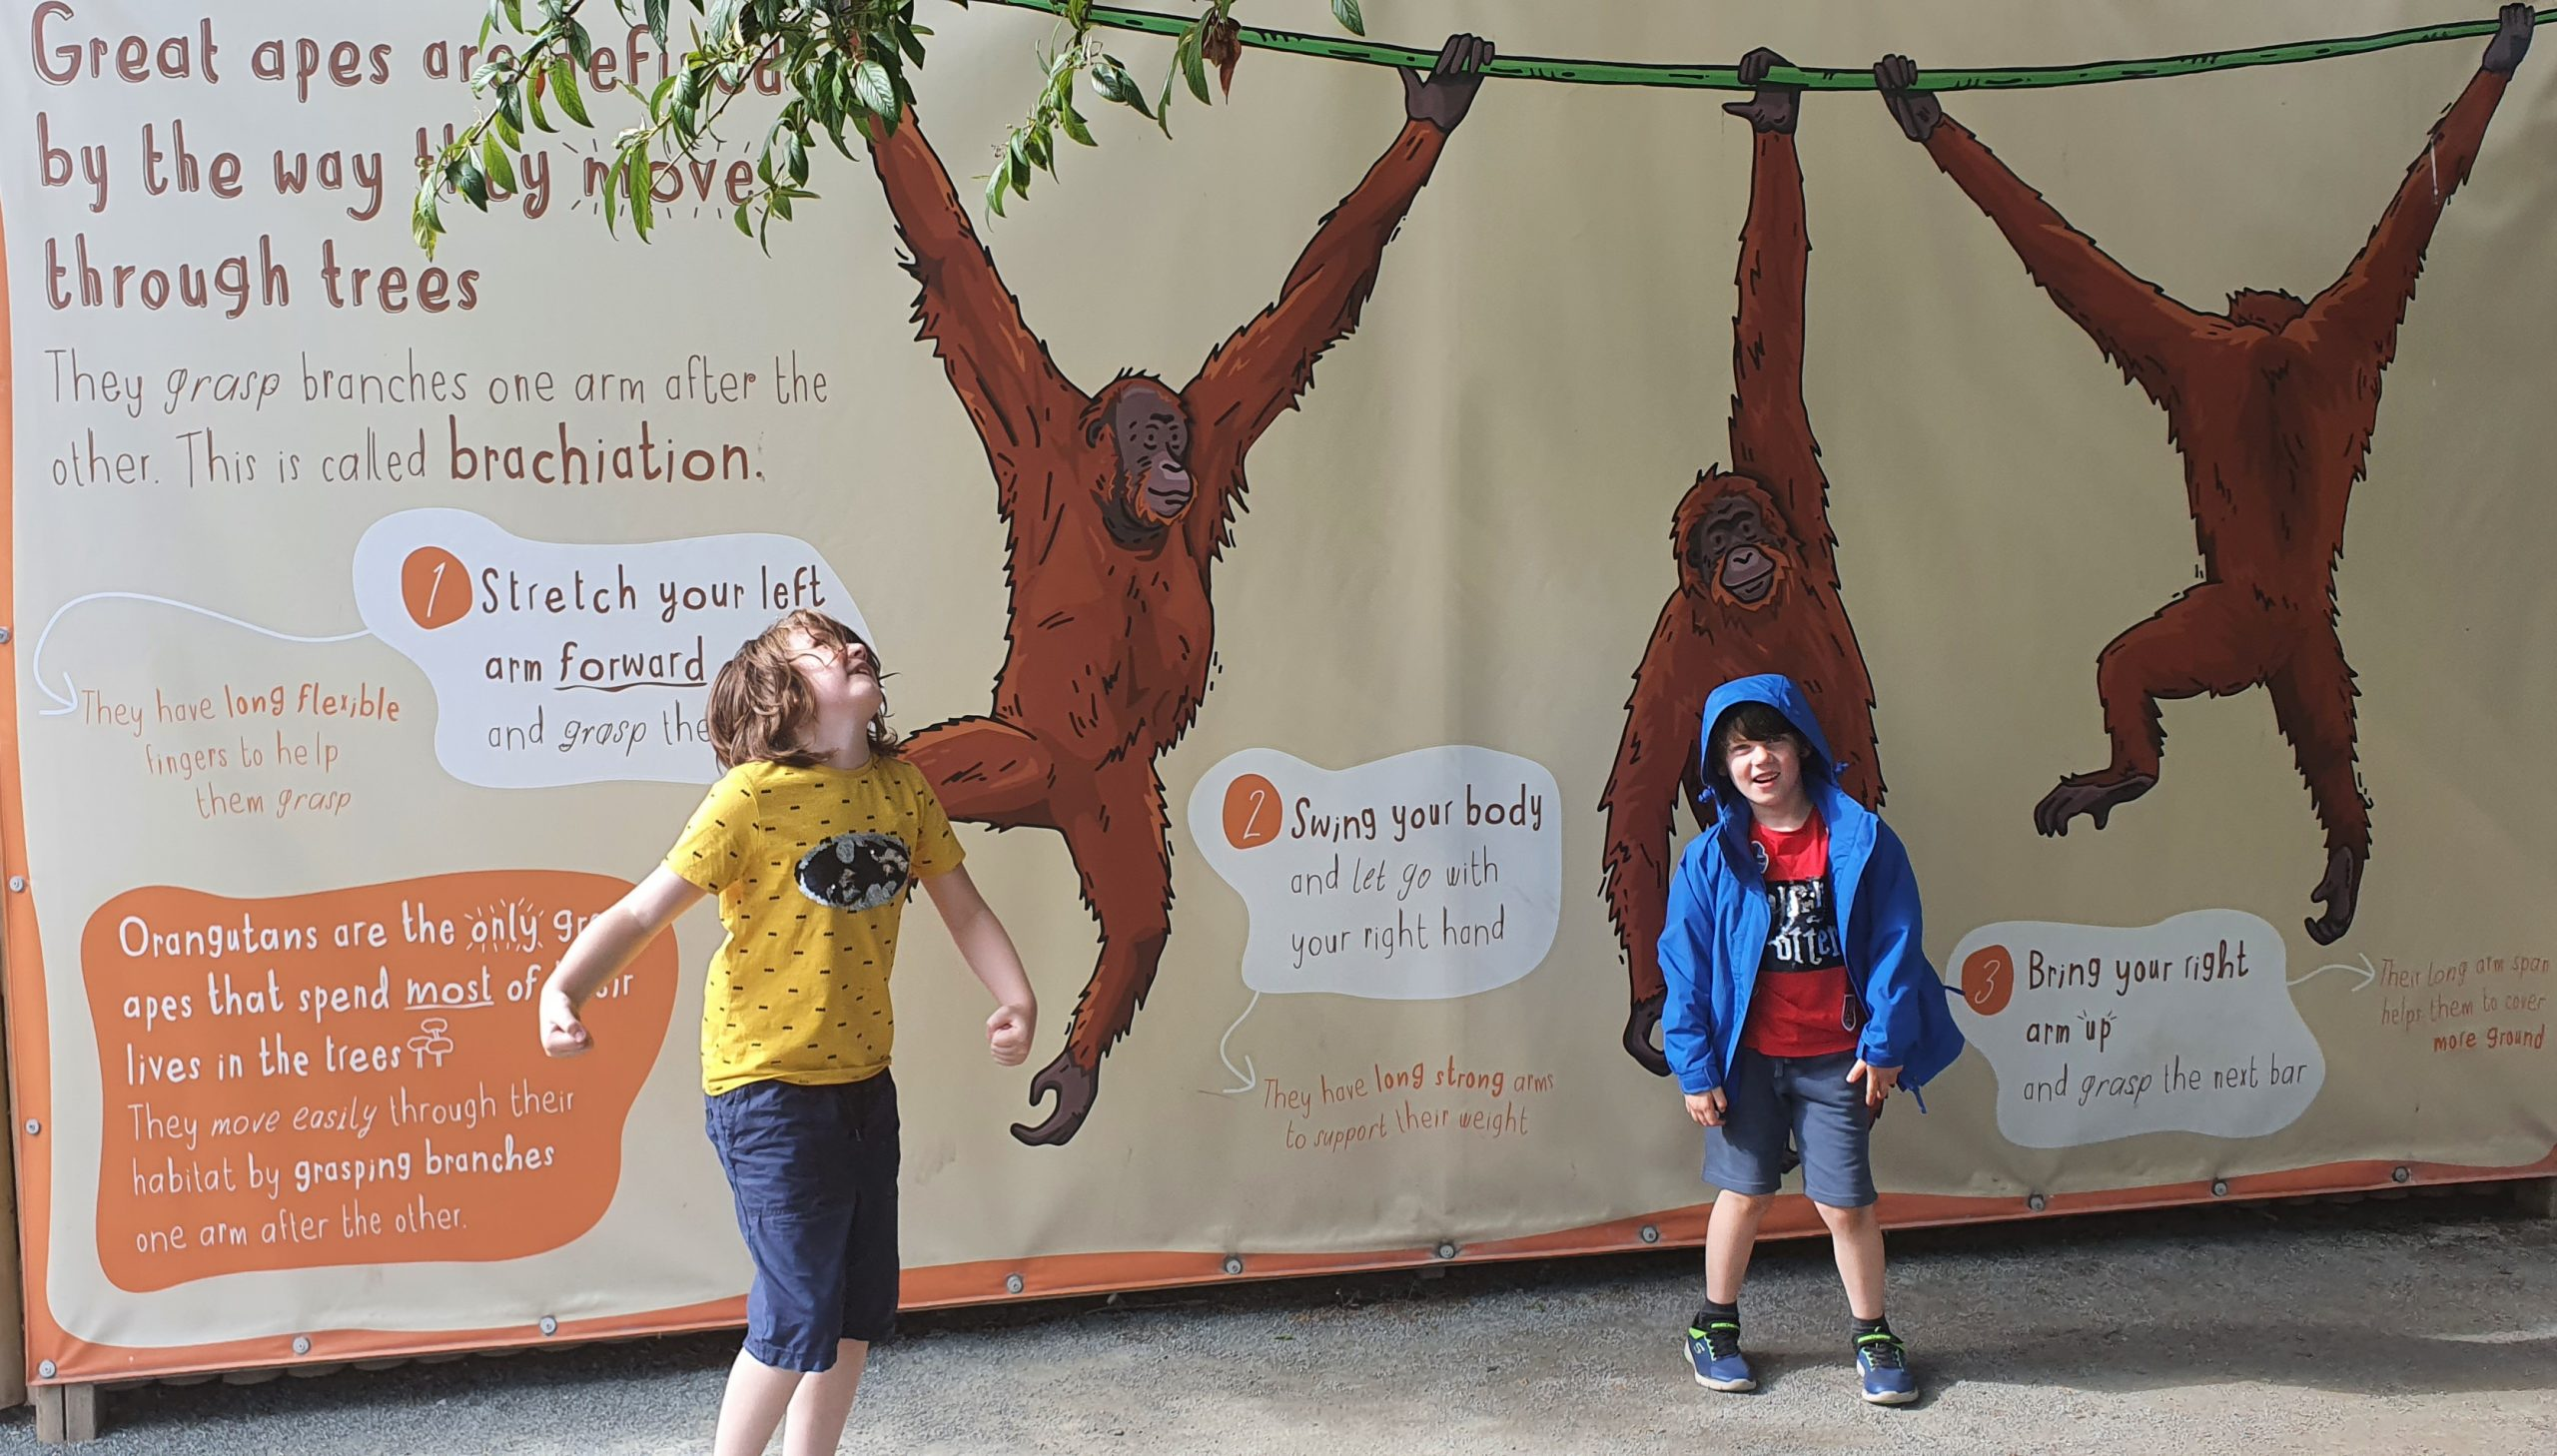 Two boys acting like a monkey in front of an image showing how monkeys swing